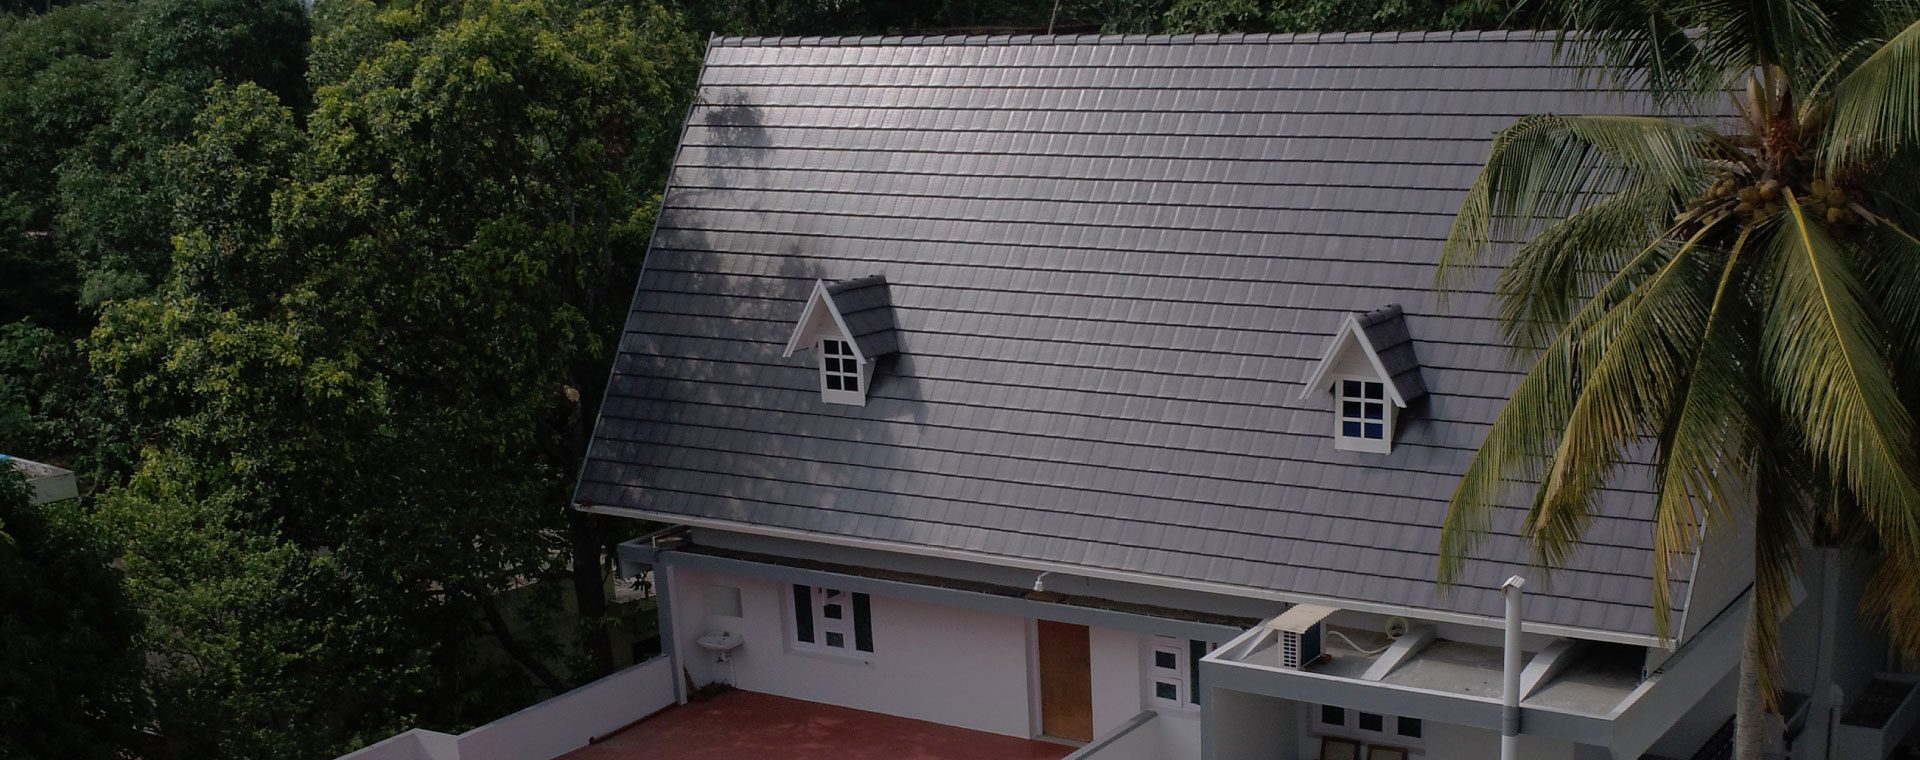 Plano dark grey concrete roof tile house image